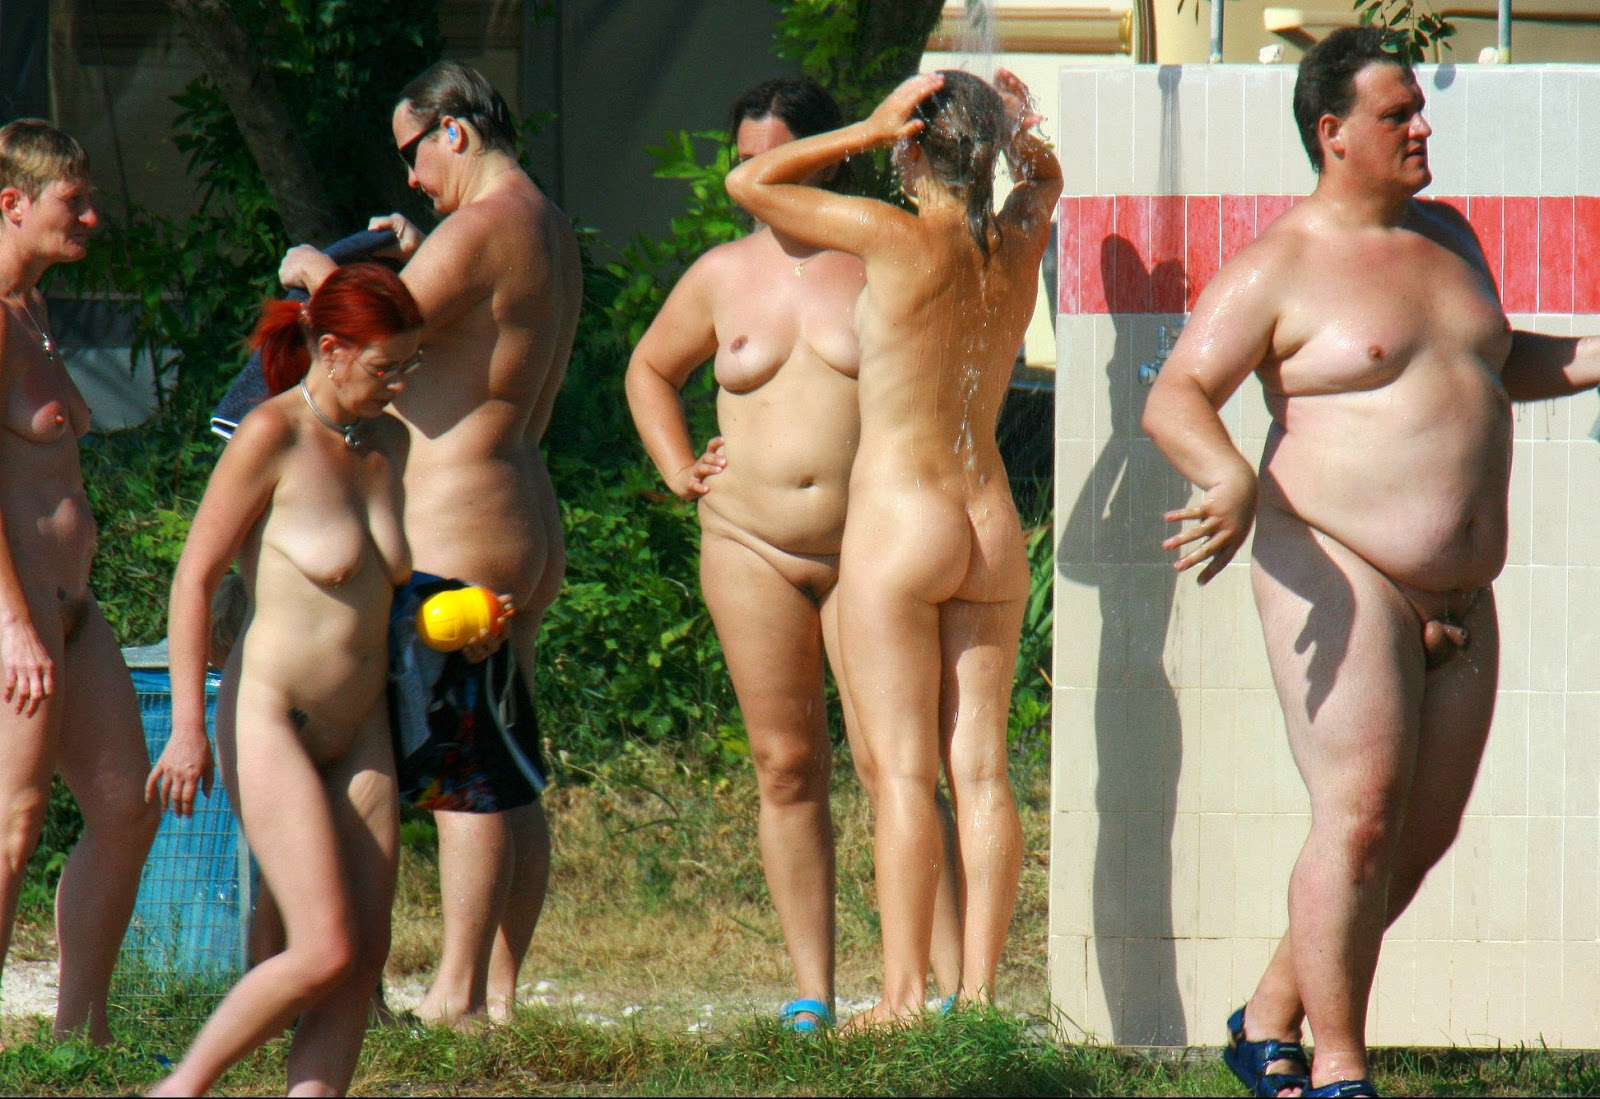 pictures of nudist camps